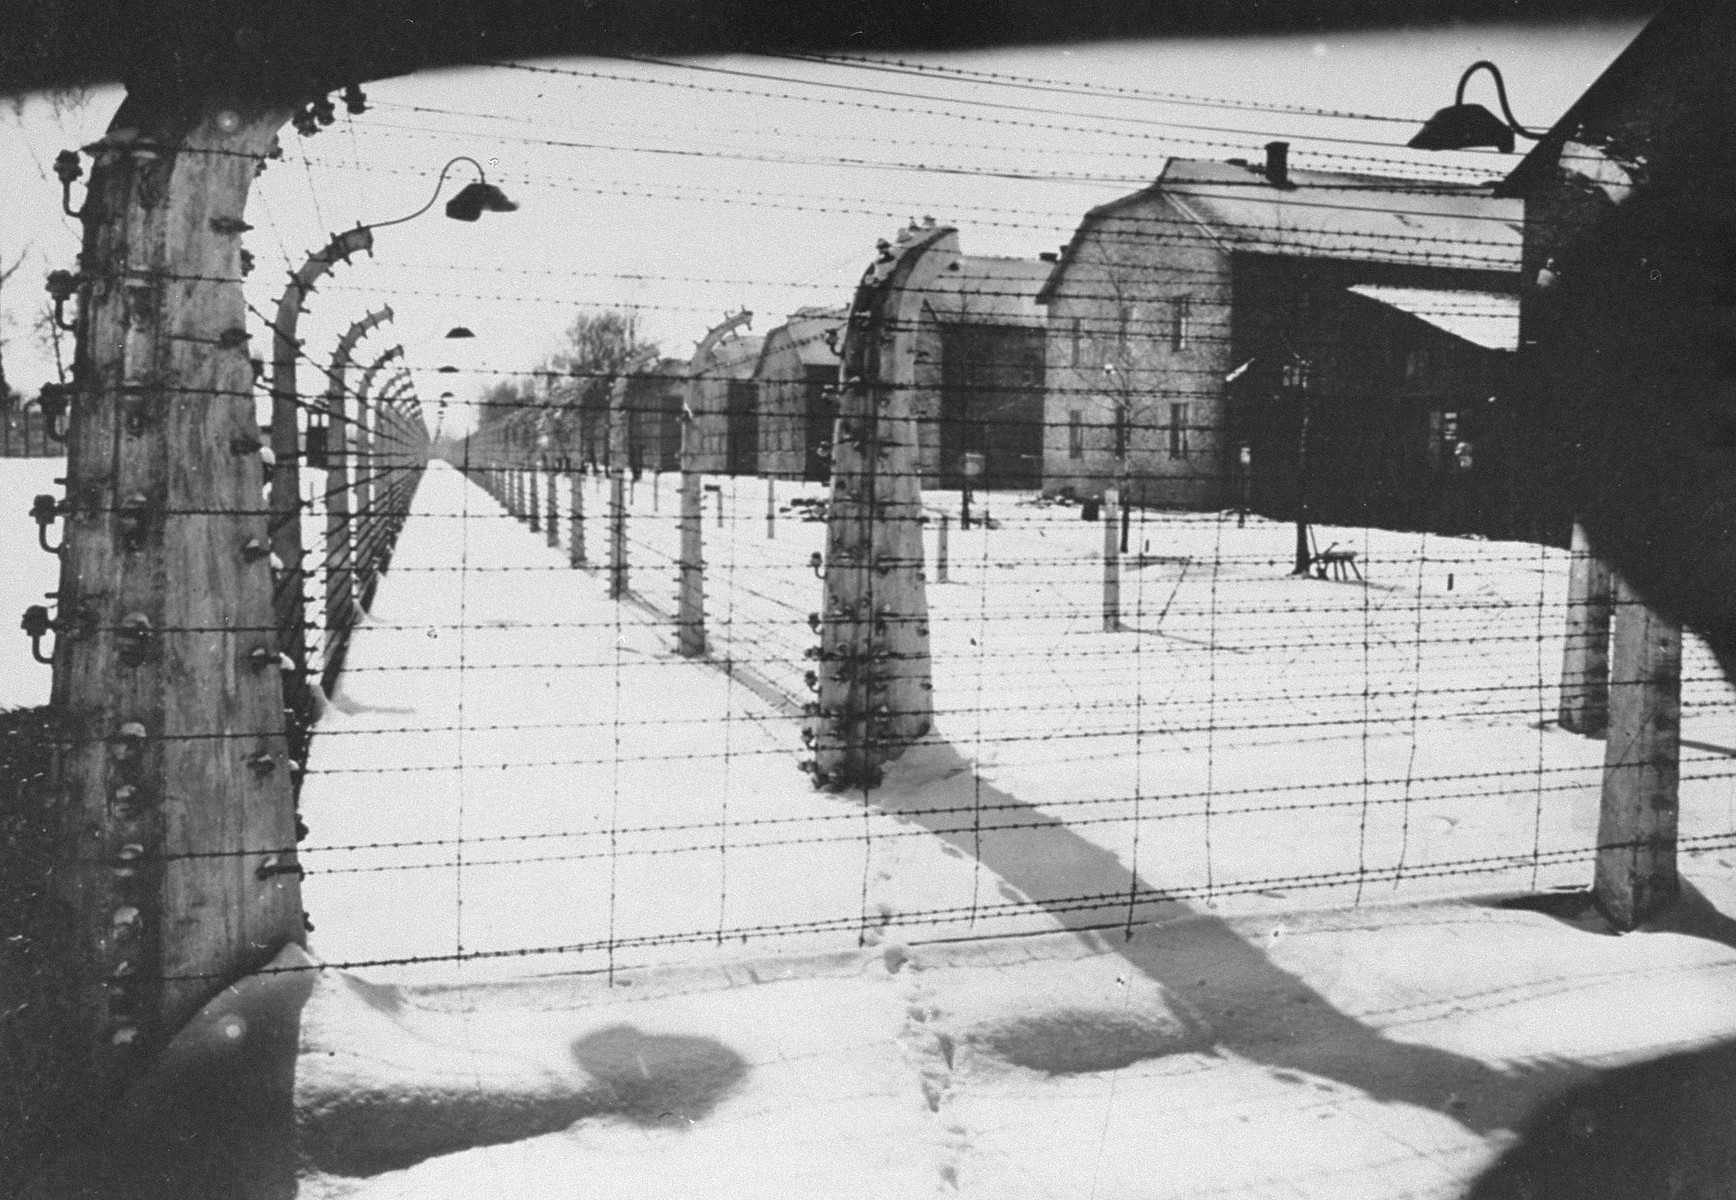 View of a section of the barbed wire fence and barracks at Auschwitz at the time of the liberation of the camp.